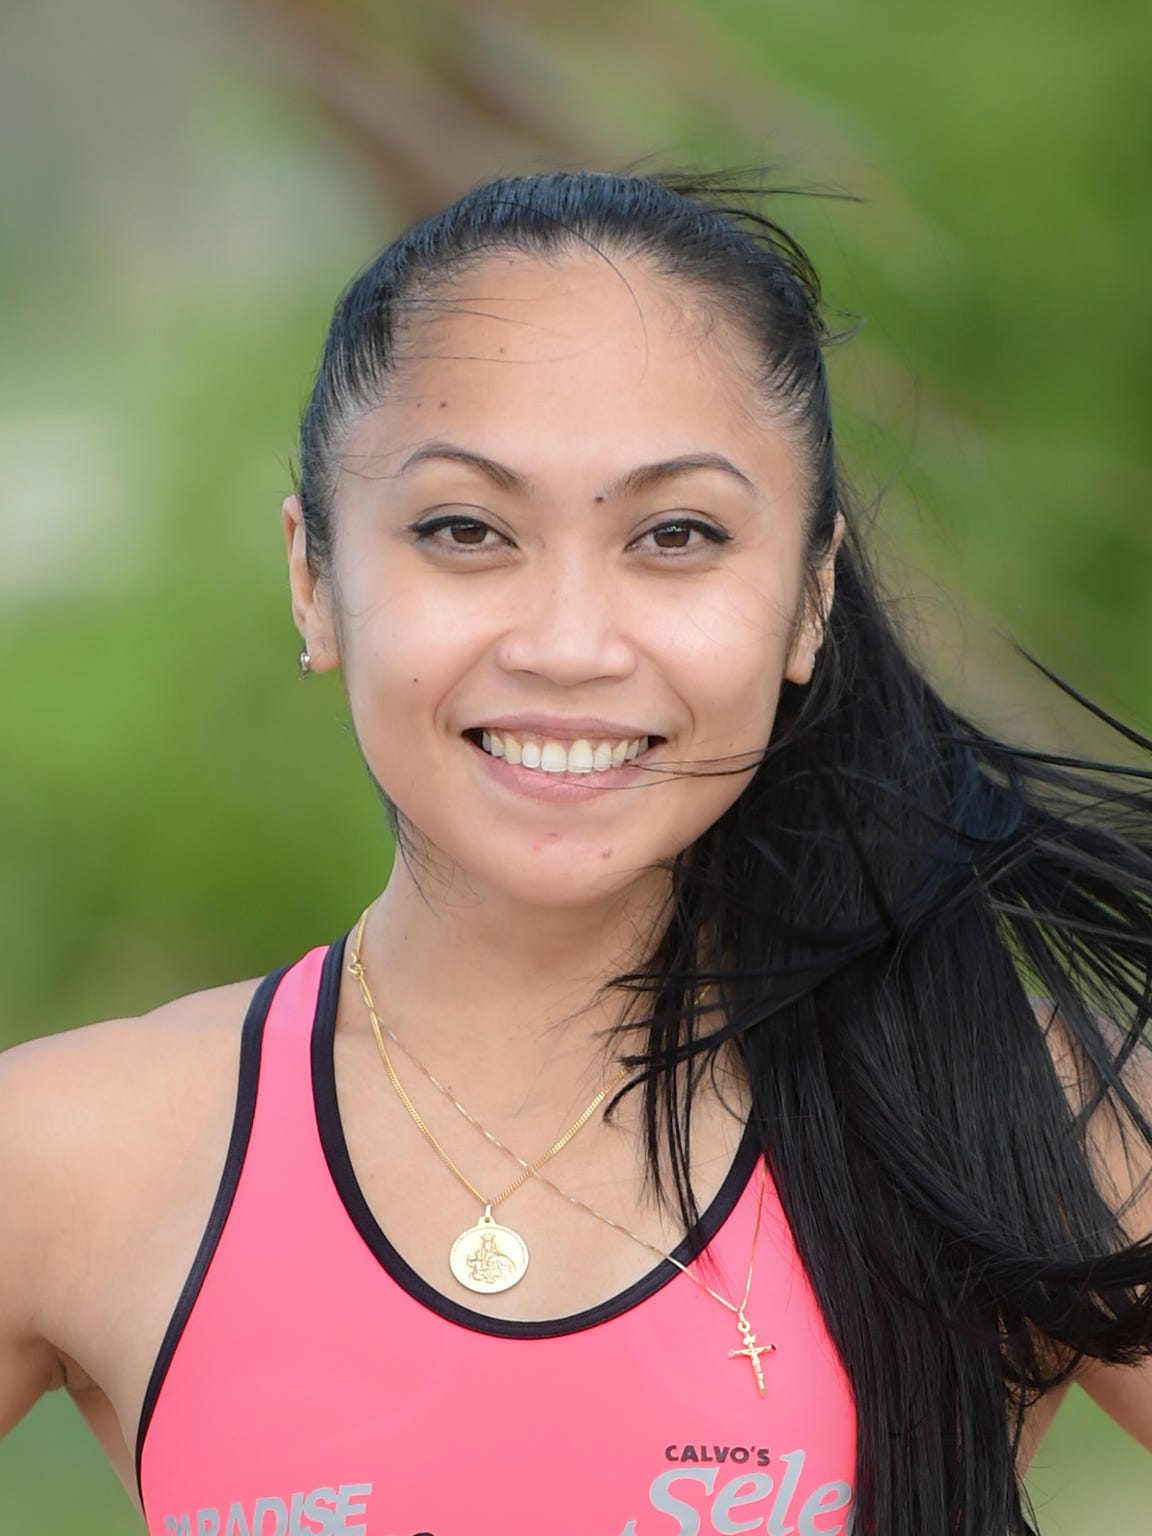 Rhea Macaluso of Chalan Pago prepares for the upcoming Boston Marathon at Asan Beach Park on April 7. She first qualified for the race in 2013, but couldn't run it because she became pregnant.